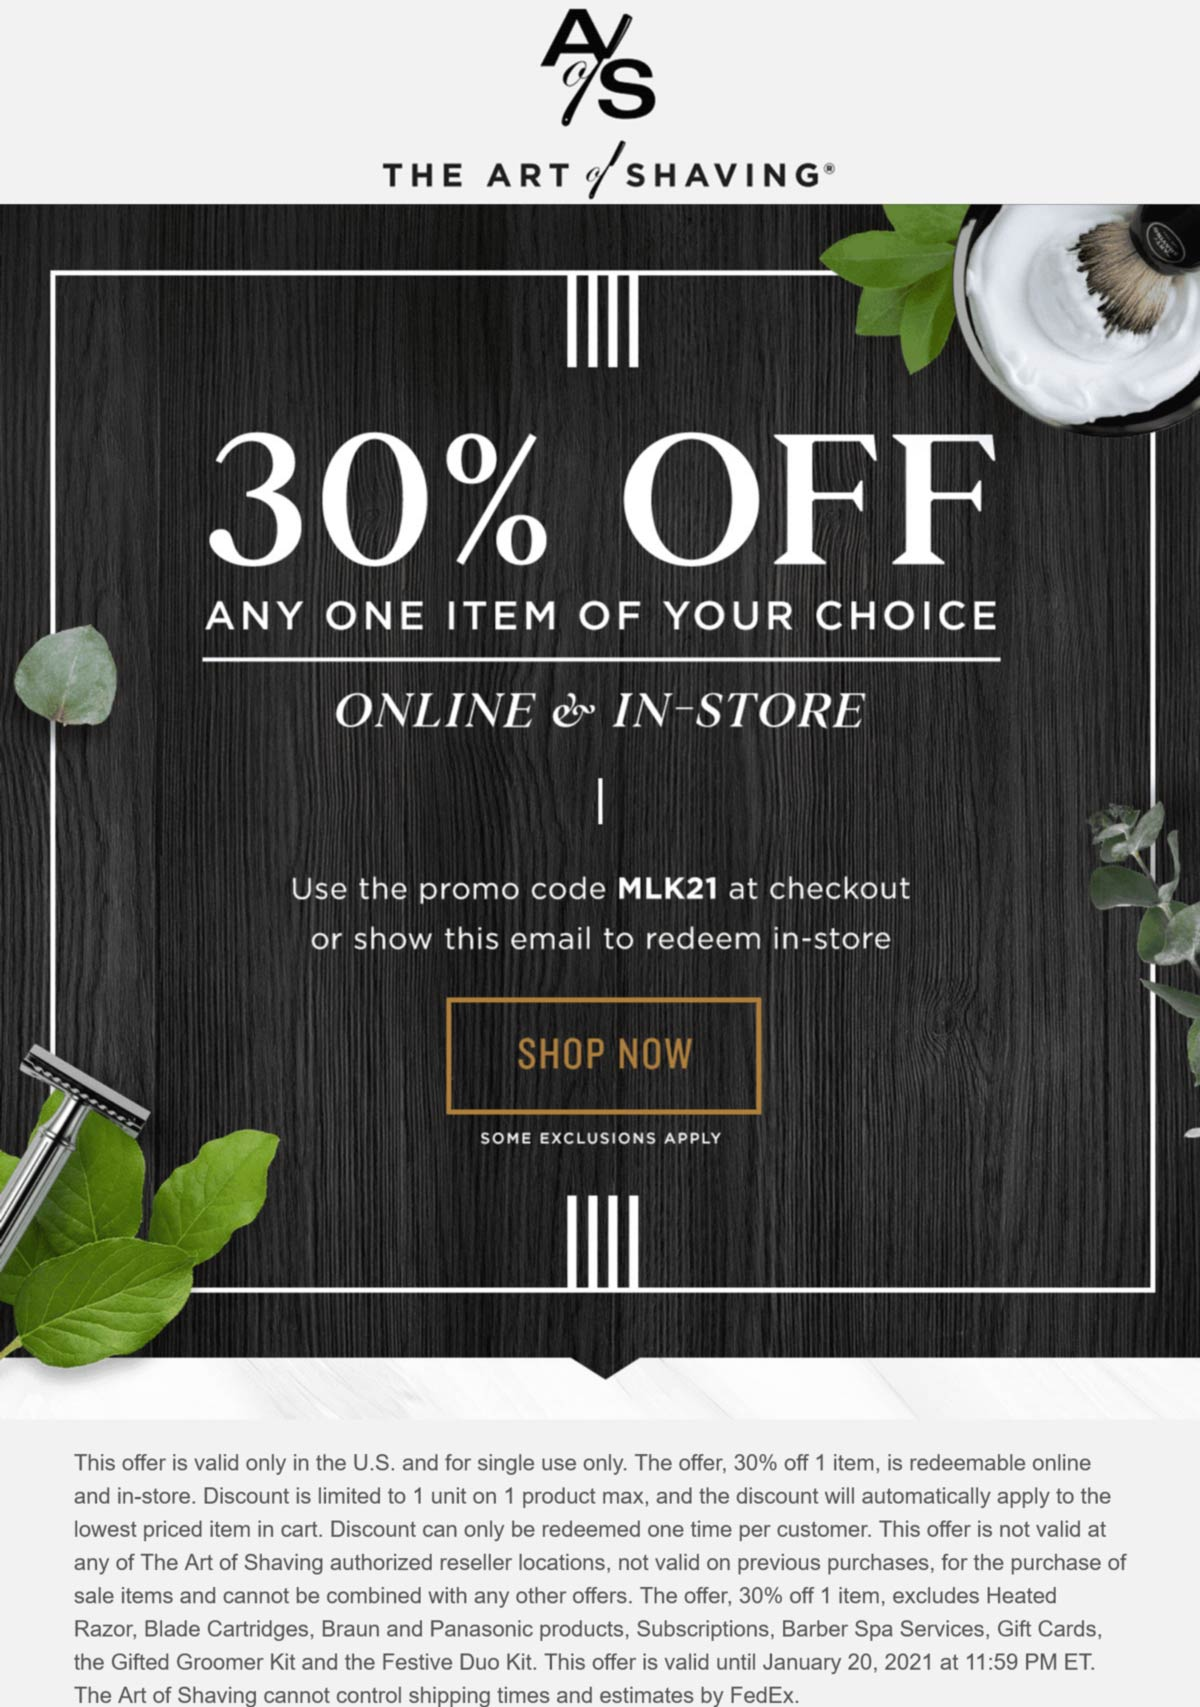 The Art of Shaving stores Coupon  30% off a single item at The Art of Shaving, or online via promo code MLK21 #theartofshaving